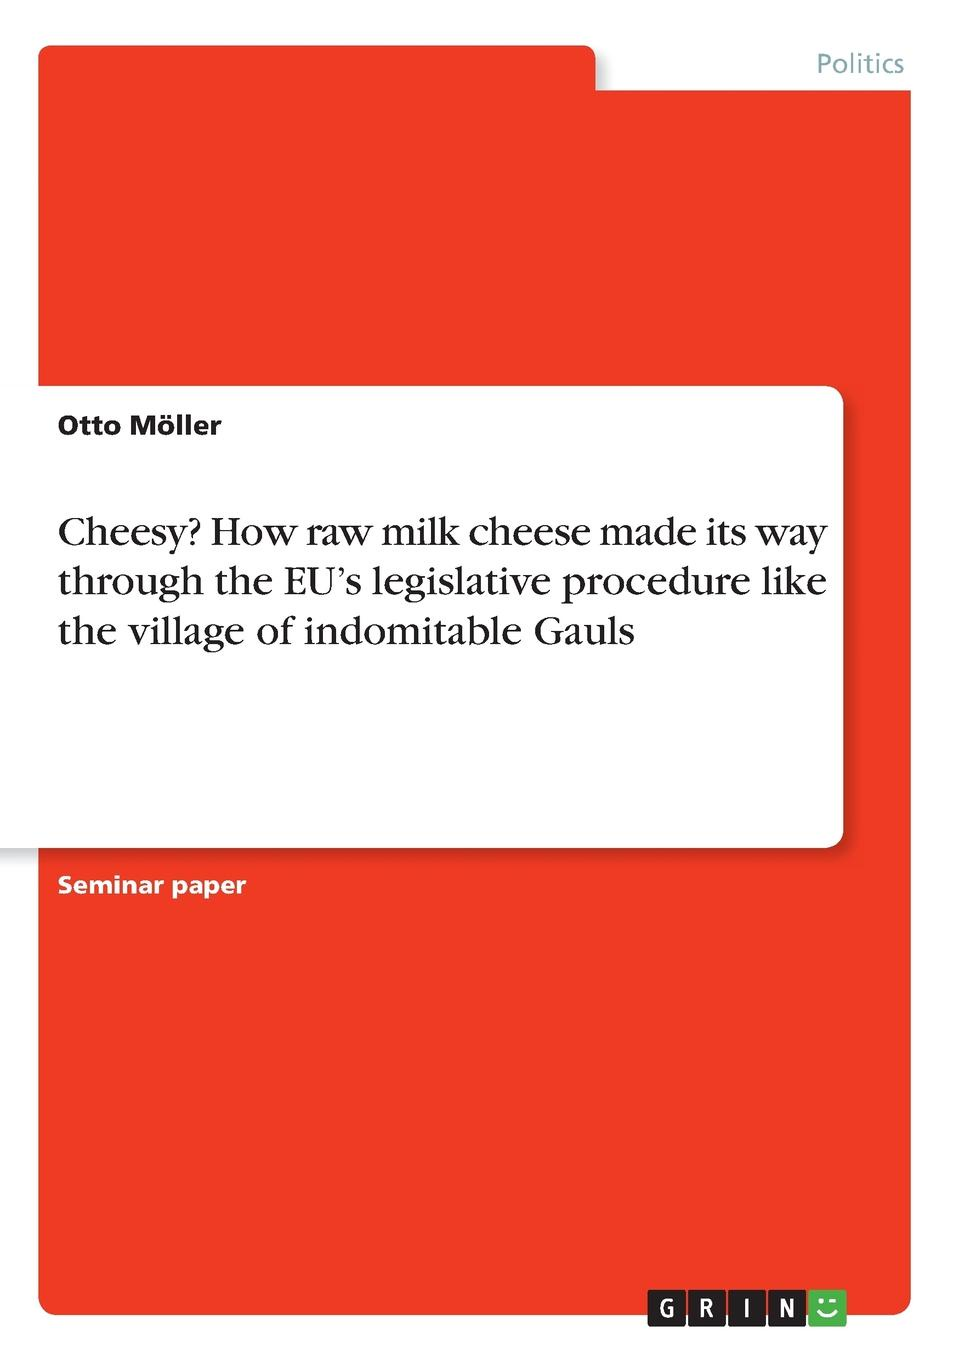 Otto Möller Cheesy. How raw milk cheese made its way through the EU.s legislative procedure like the village of indomitable Gauls raw milk quality